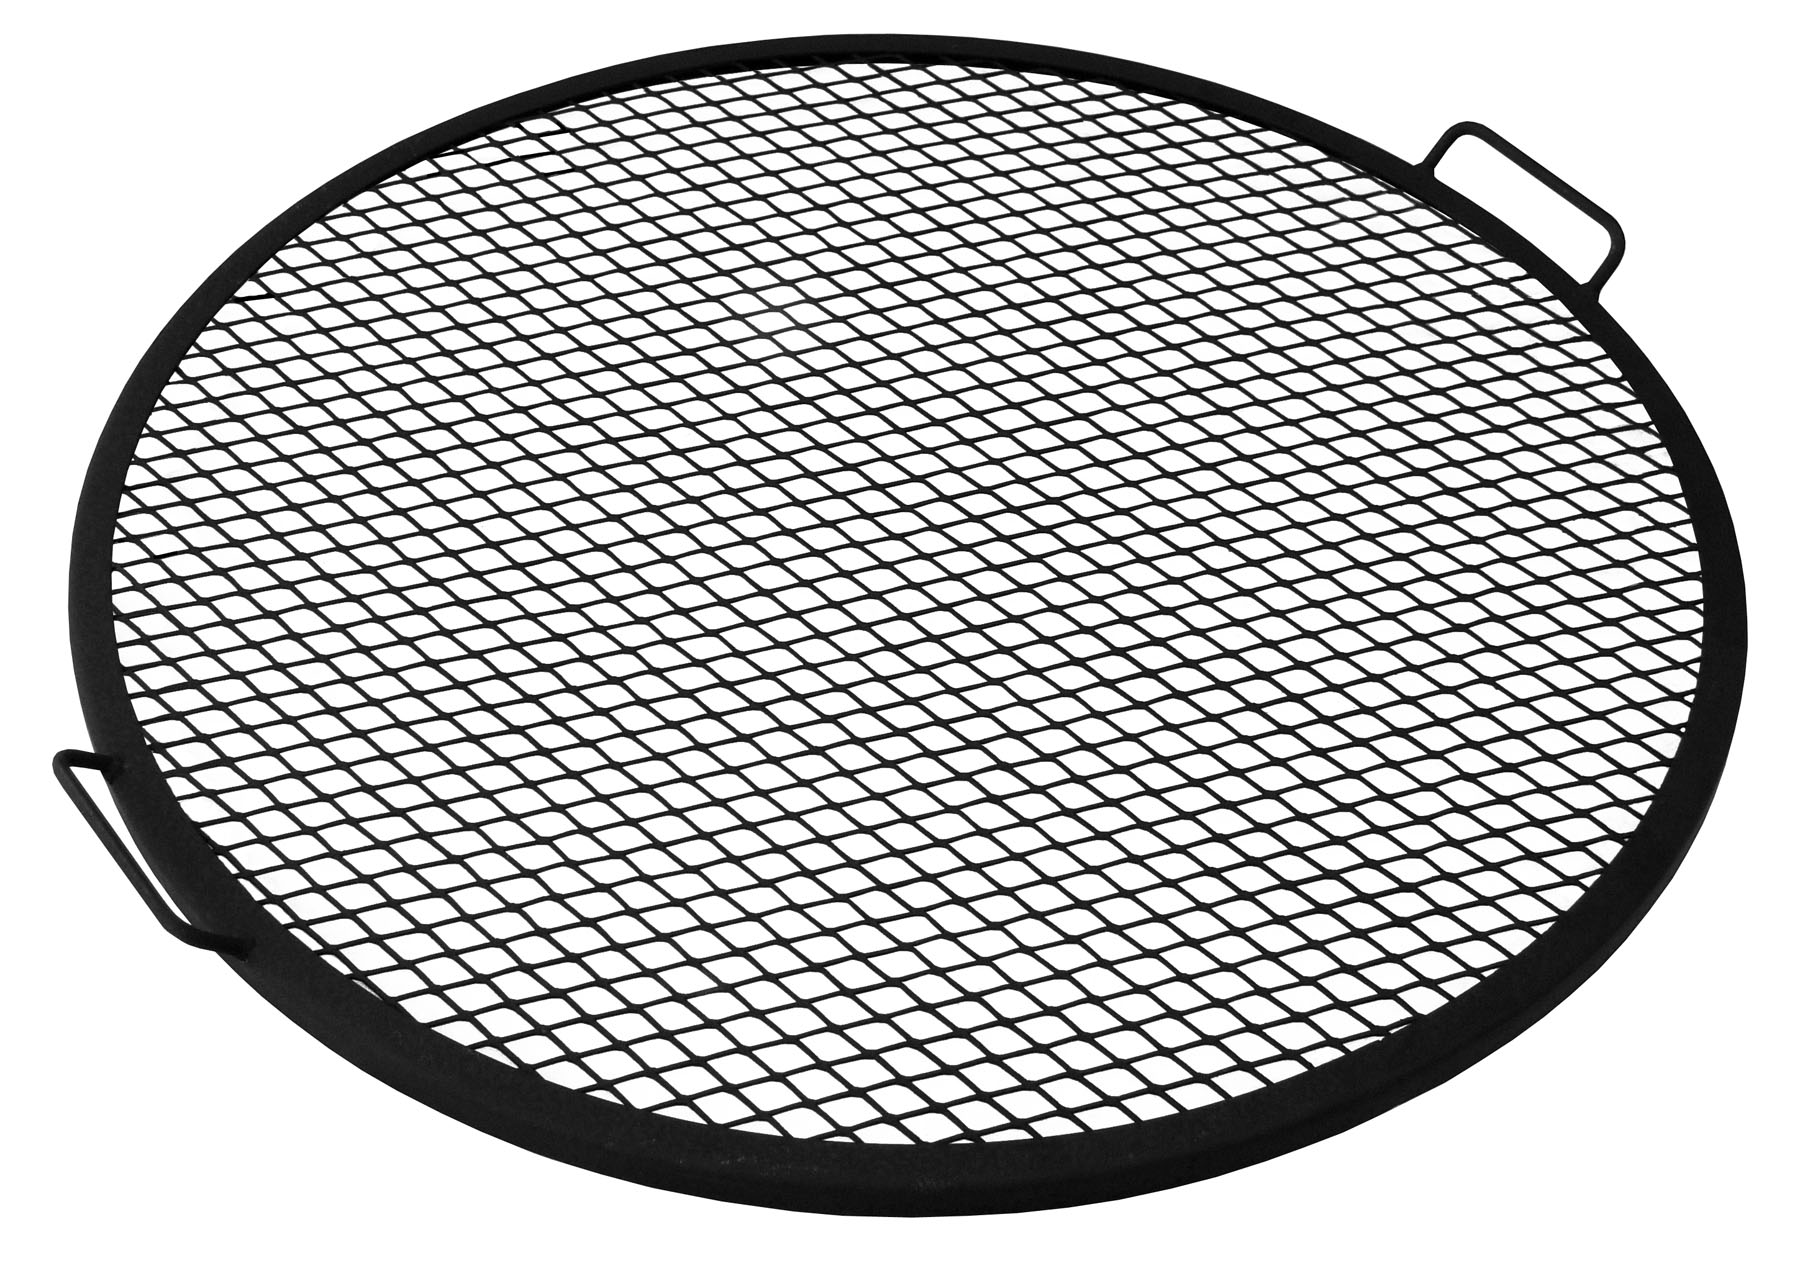 Landmann Usa Super Sky Cooking Grate